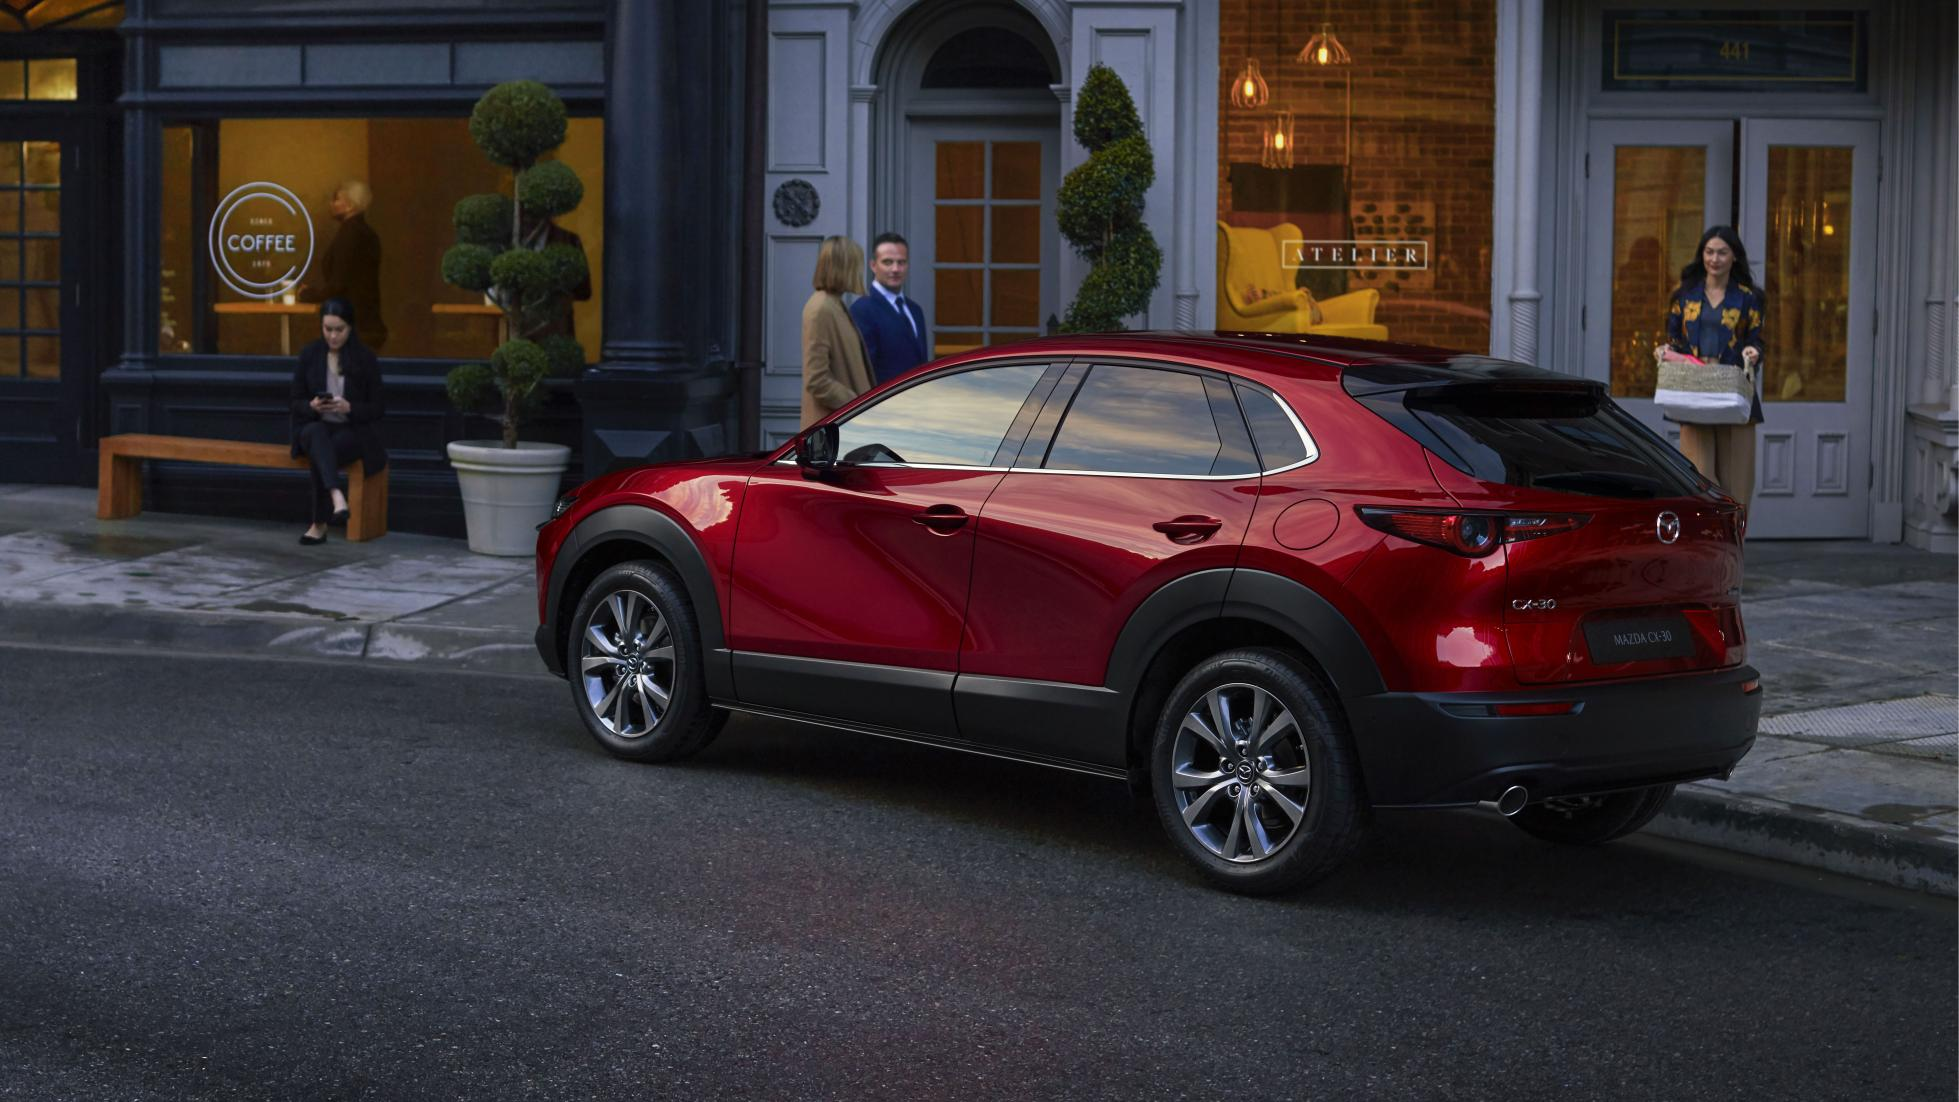 https://fellner.mazda.at/wp-content/uploads/sites/56/2019/09/mazda_cx-30_09.jpg